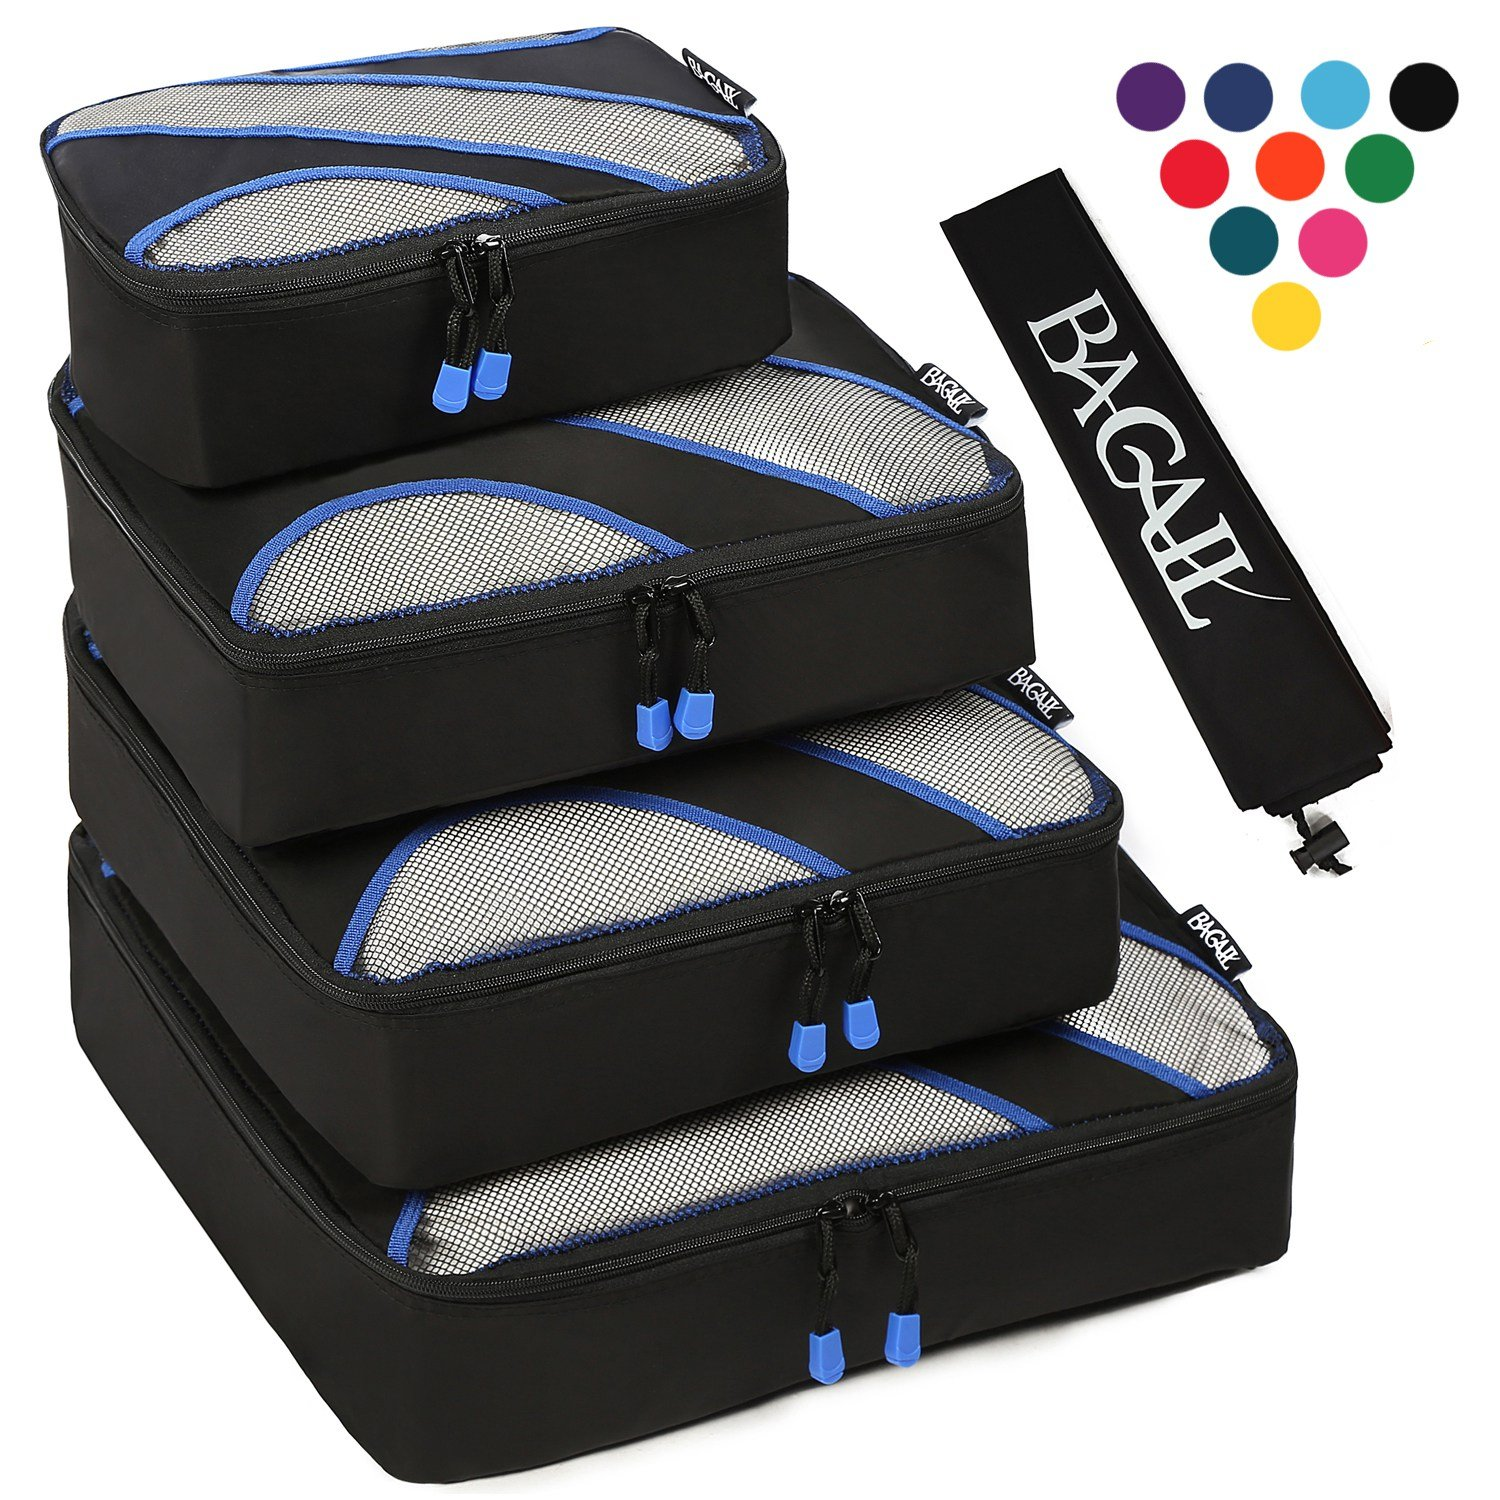 4 Set Packing Cubes,Travel Luggage Packing Organizers with Laundry Bag Black by BAGAIL